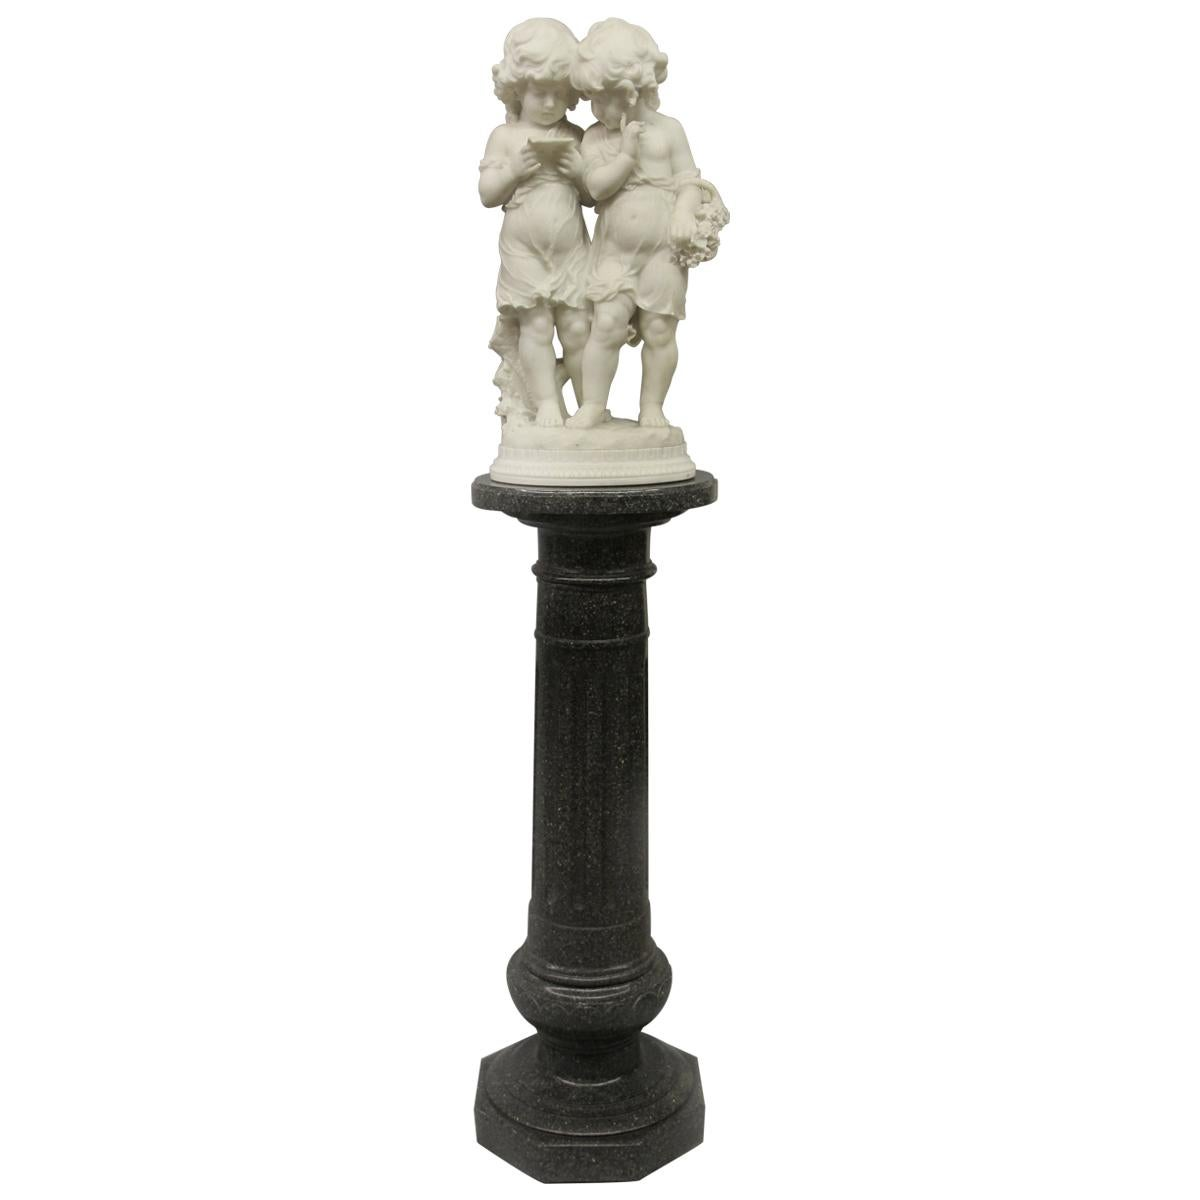 Lovely Early 20th Century Italian Carrara Marble Sculpture by Affortunato Gory